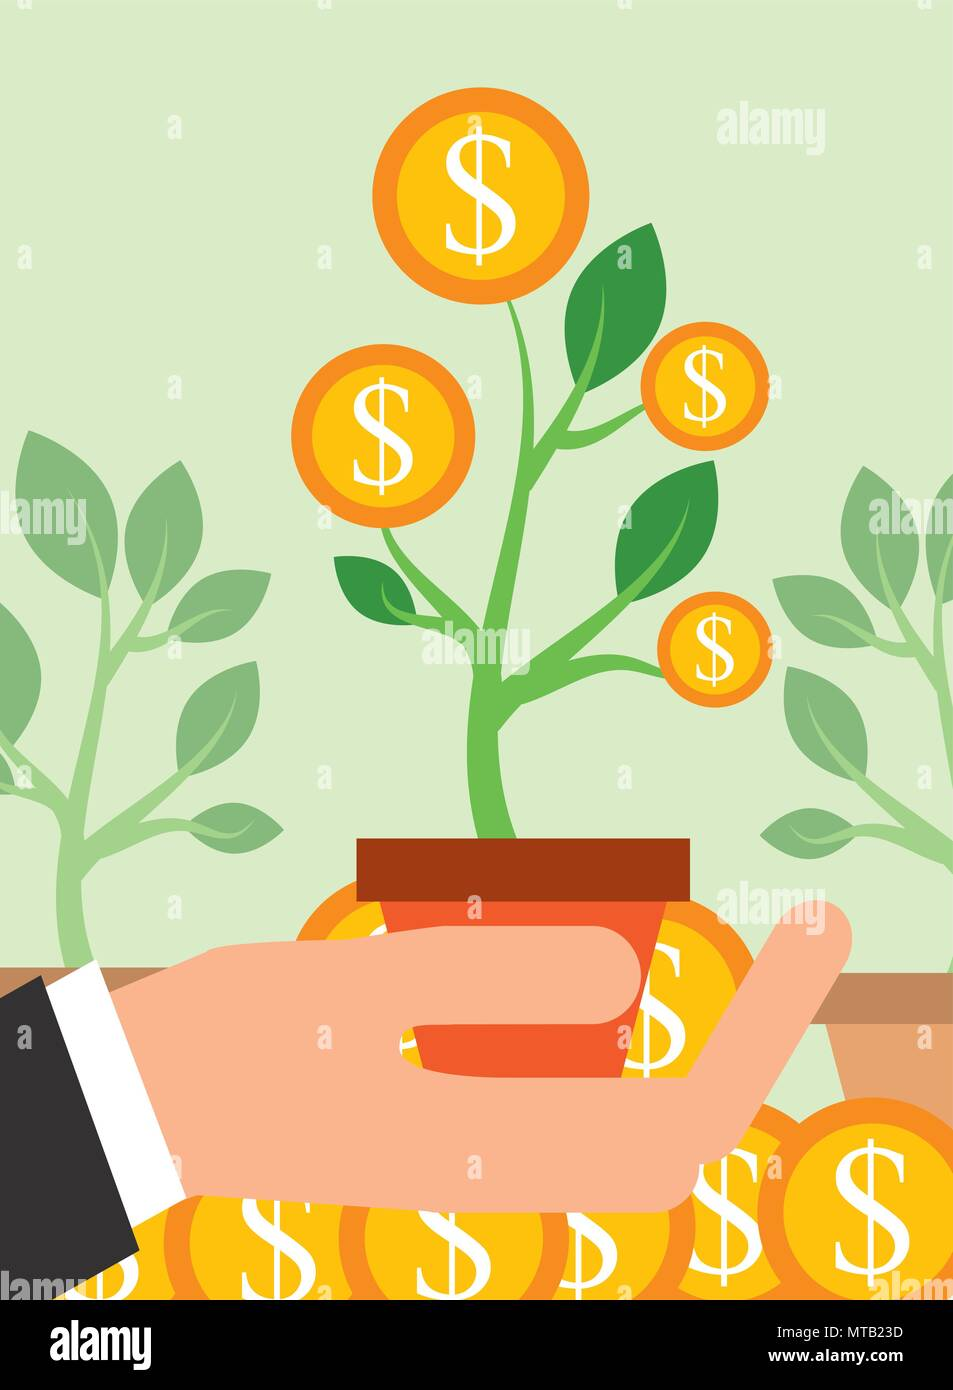 saving money business - Stock Image